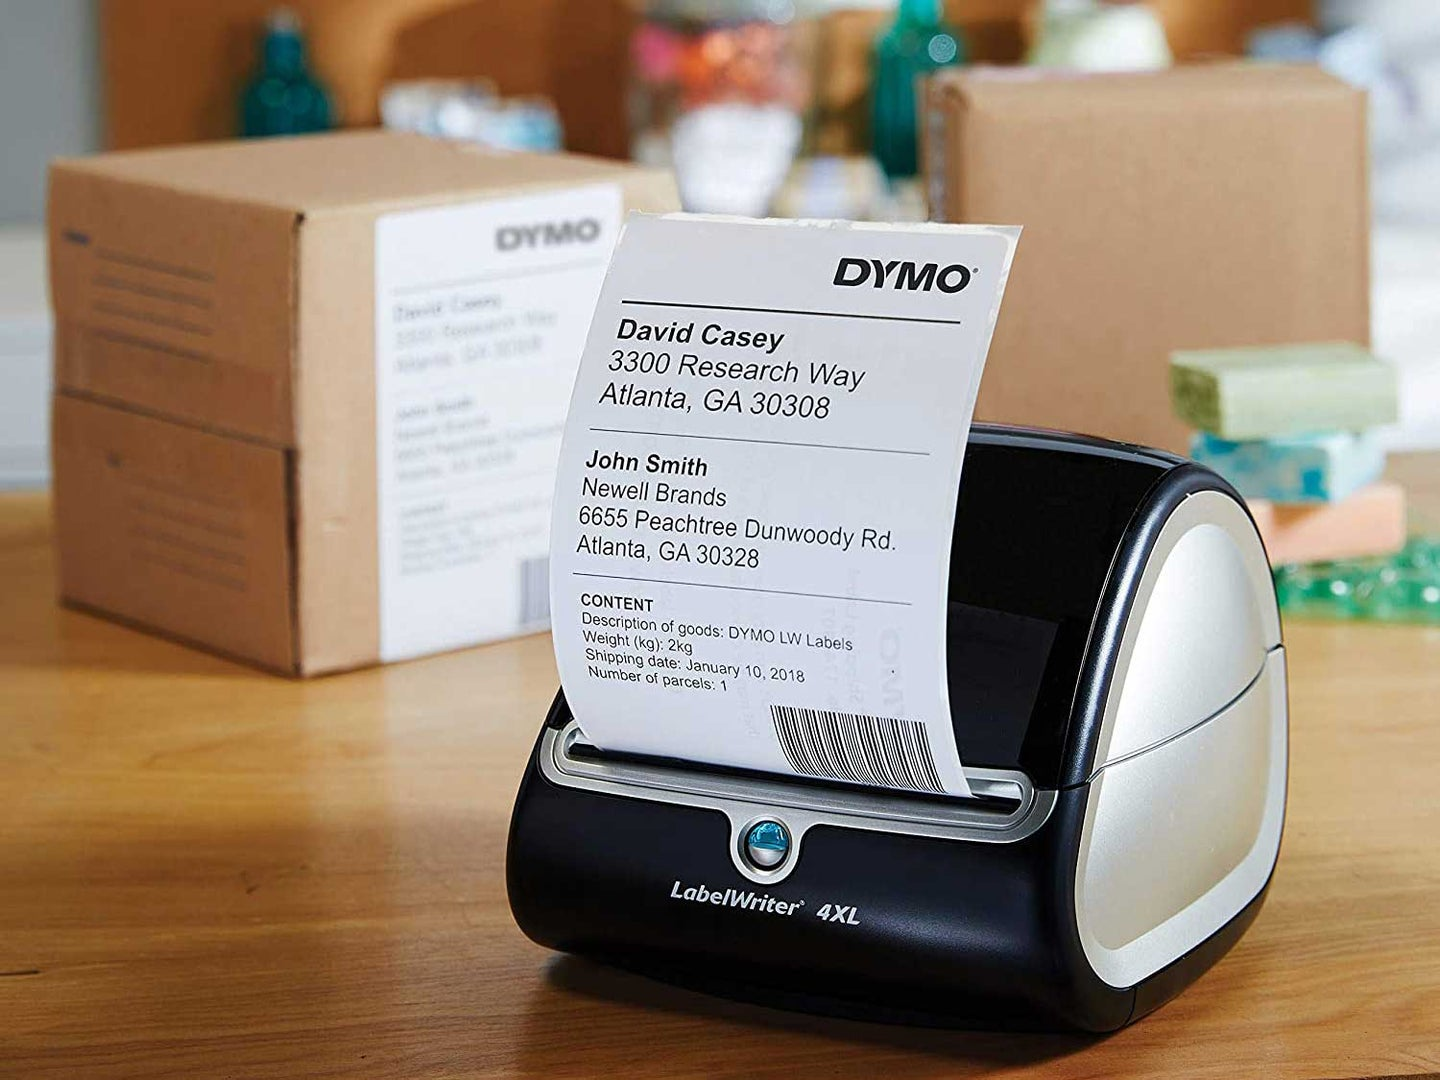 DYMO label maker on boxes